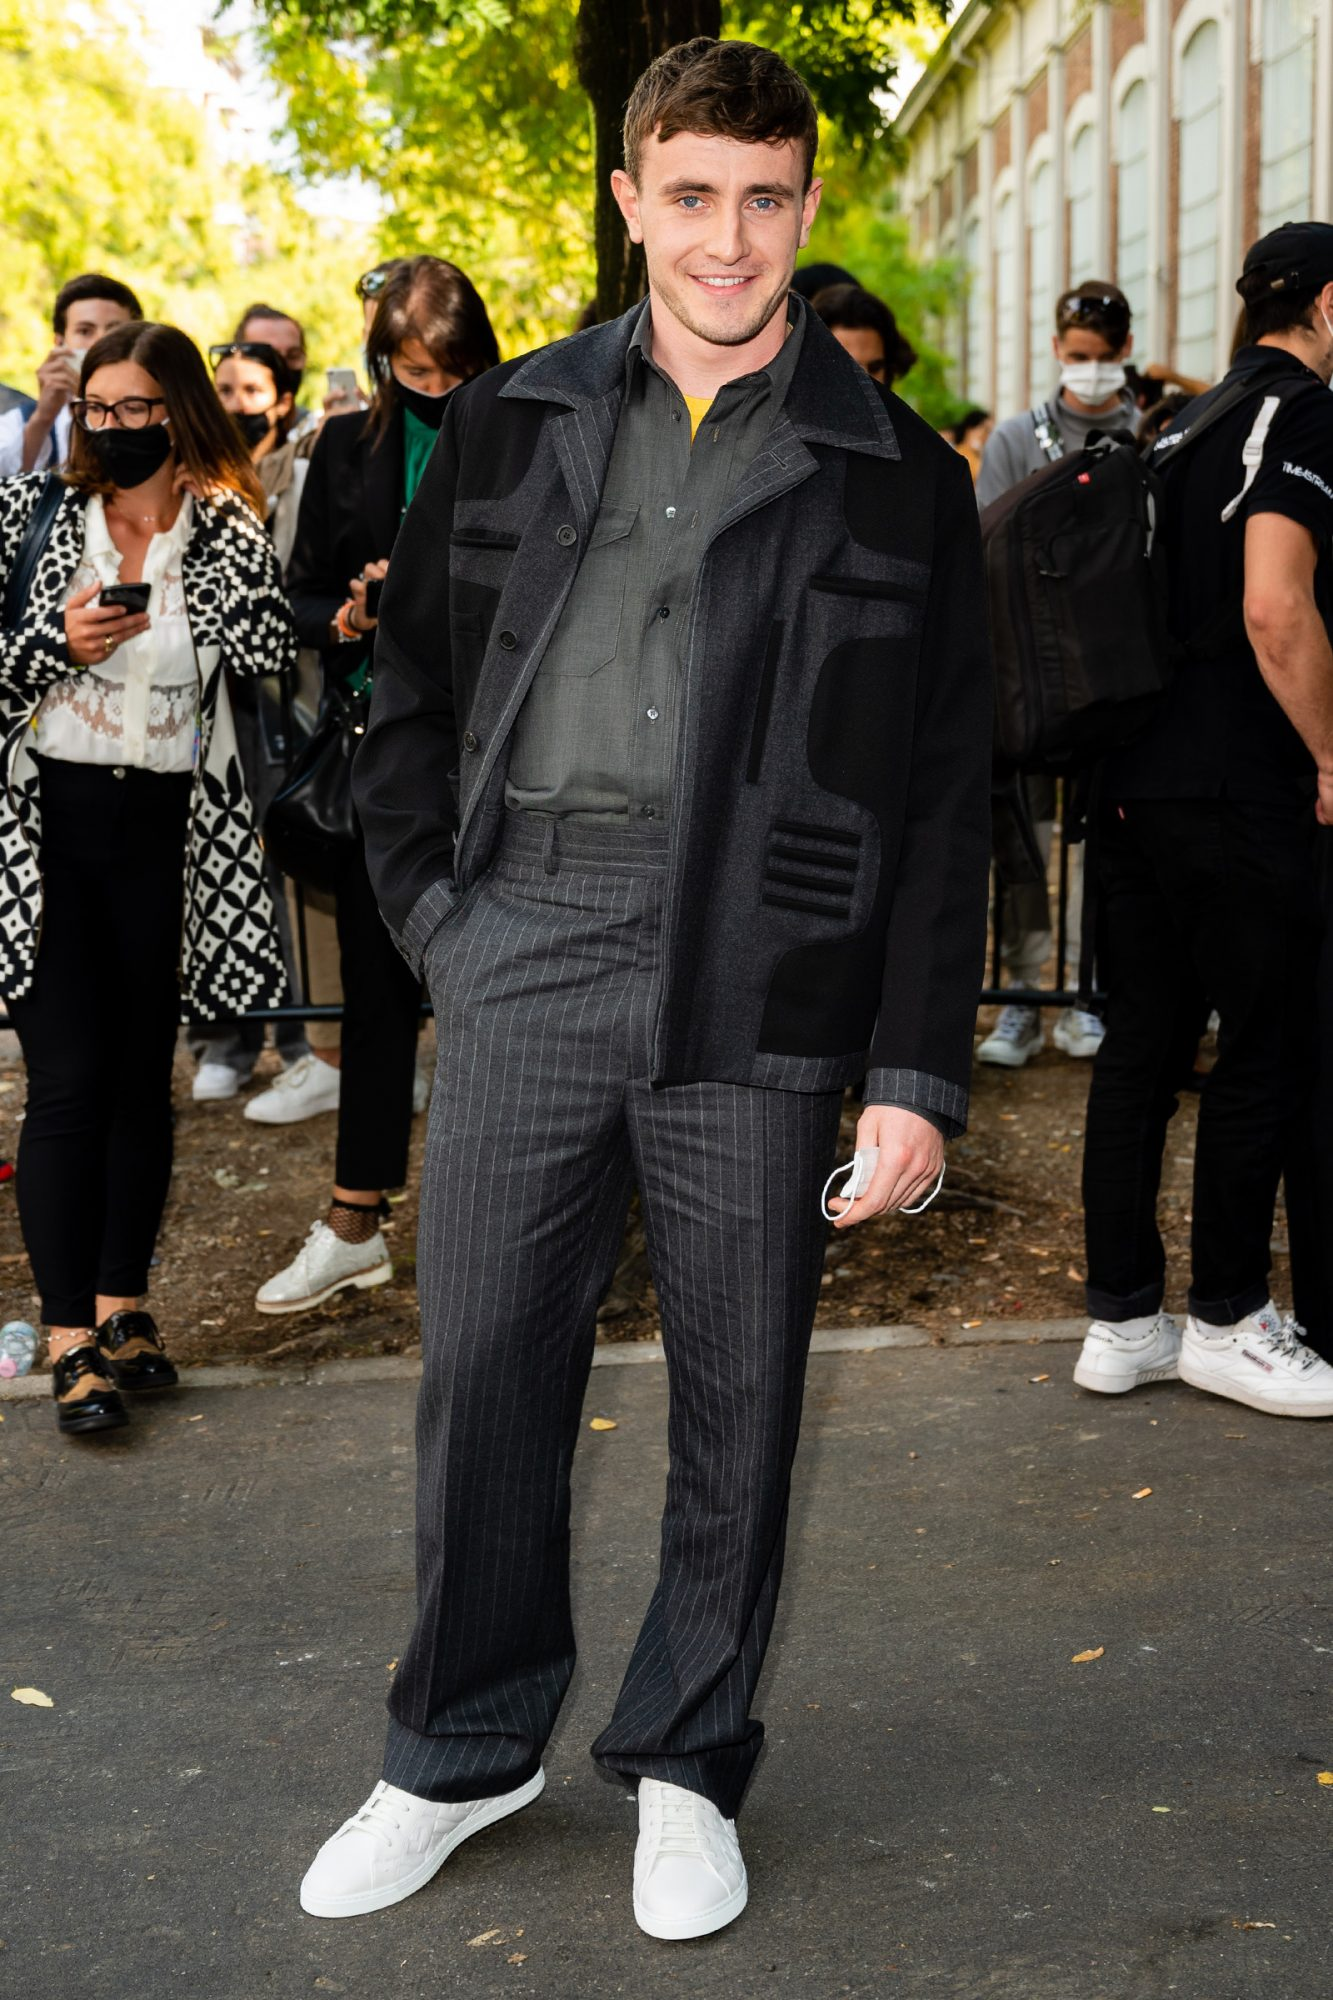 Paul Mescal attends Fendi's fashion show during the Milan Women's Fashion Week on September 23, 2020 in Milan, Italy